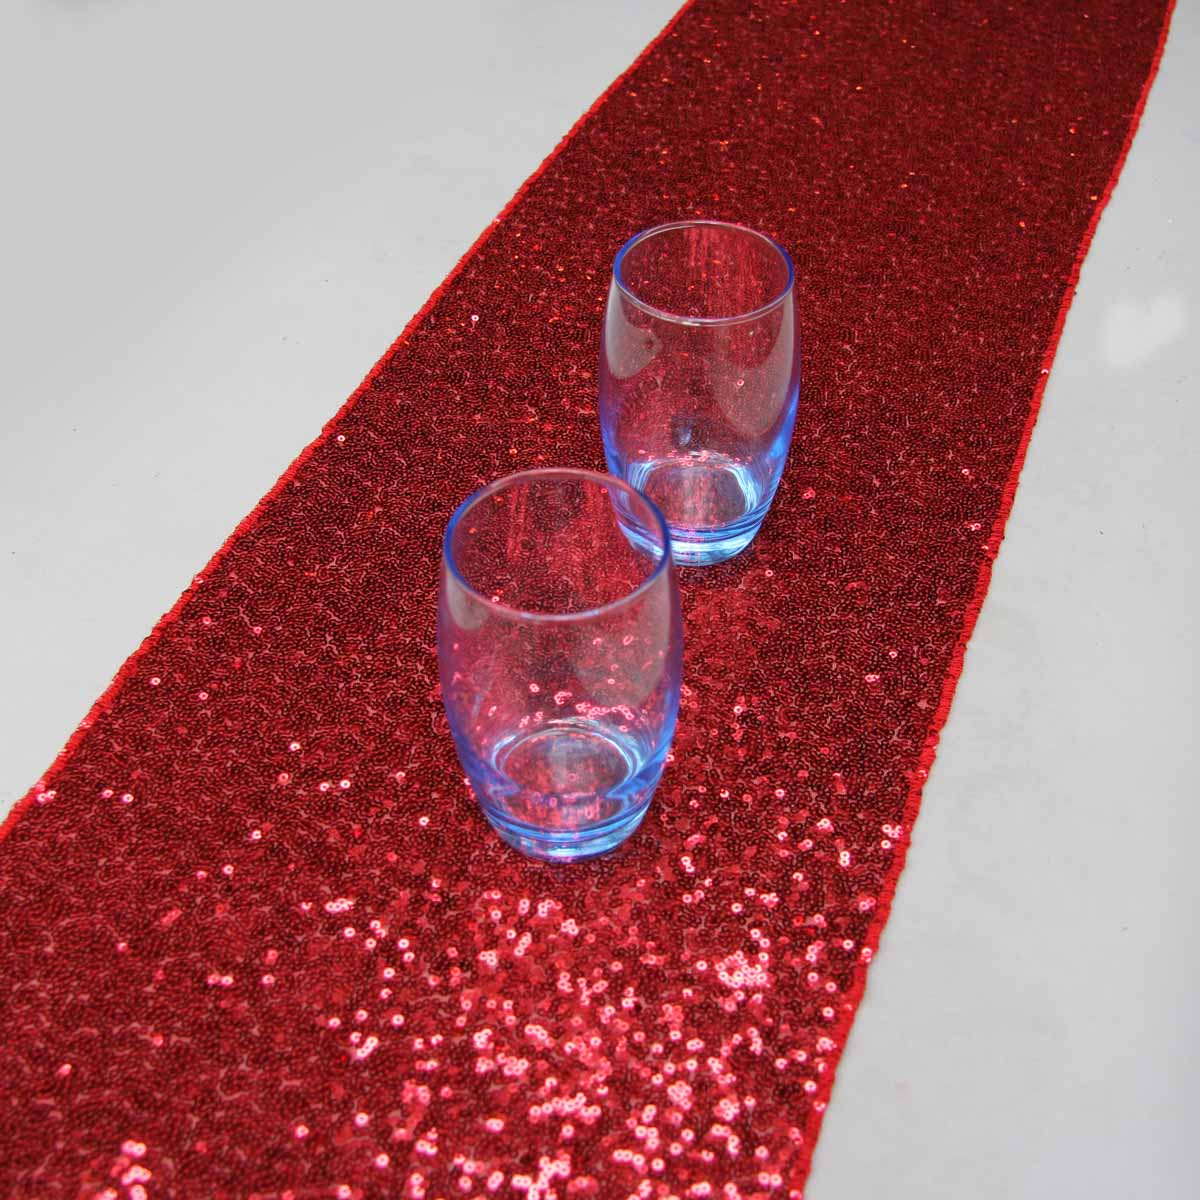 Delicieux 14u0027u0027x108u0027u0027/36cmx274cm Luxury Red Sequin Table Runner Wedding Party Table  Decoration Solid Color Table Runners In Table Runners From Home U0026 Garden On  ...